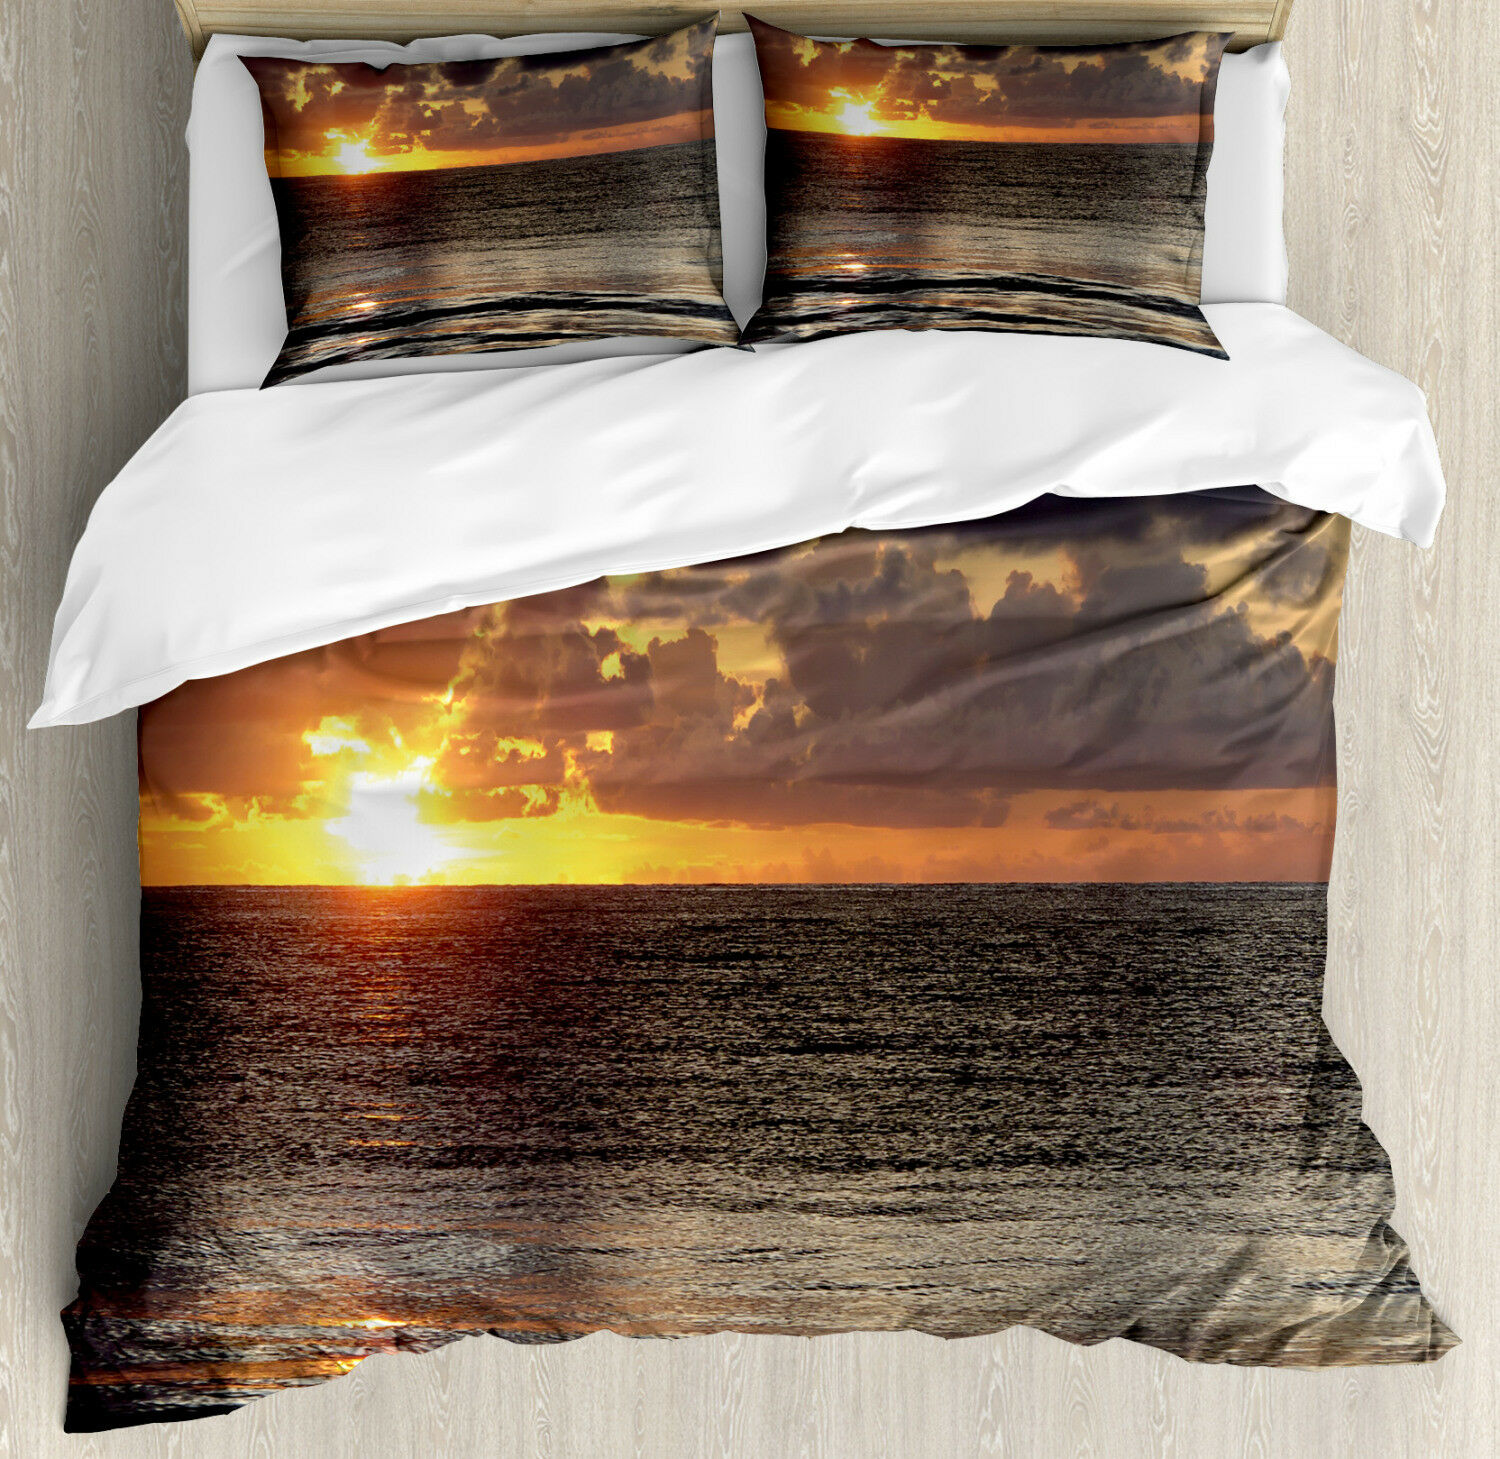 Ocean Duvet Cover Set with Pillow Shams Sunrise Clouds Cancun Print